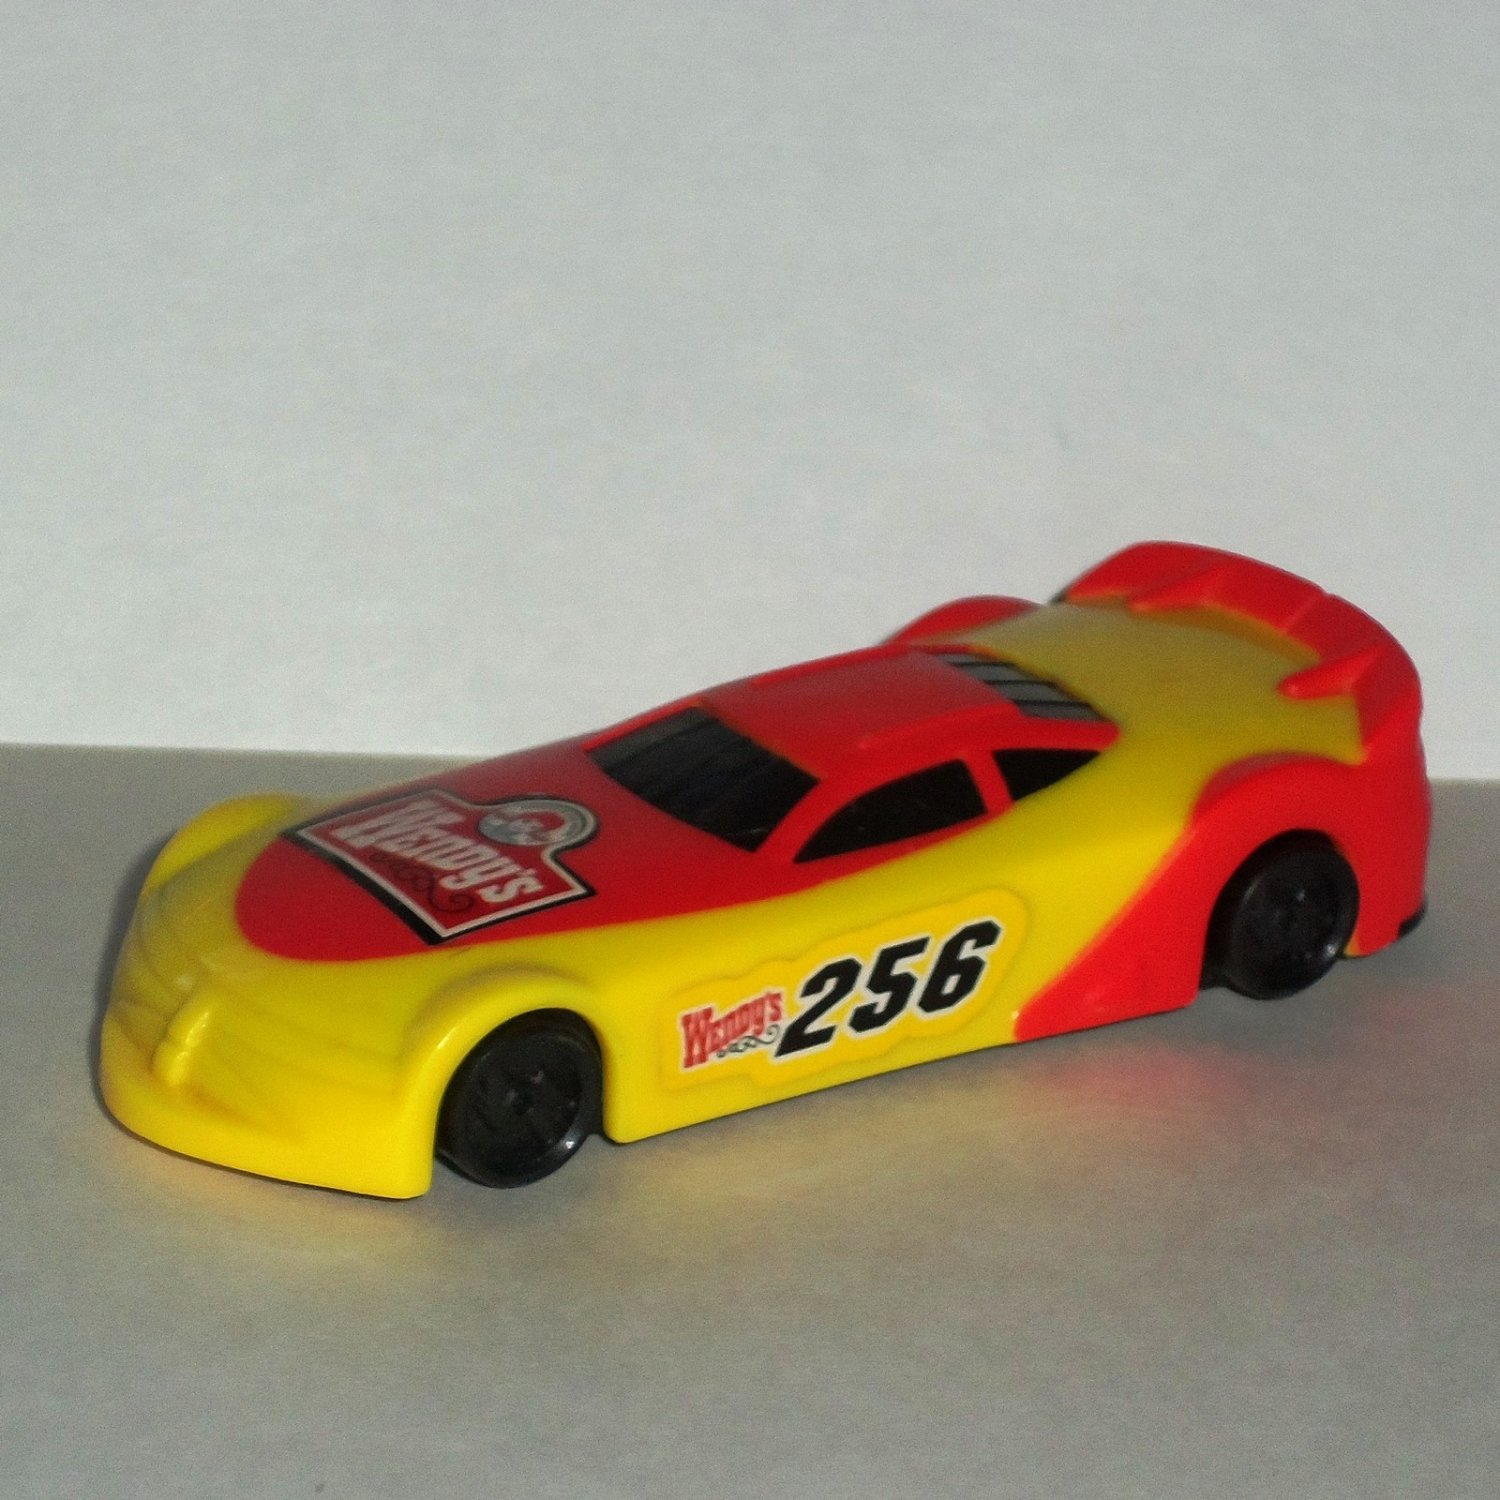 Wendy's 2009 Racers #256 Plastic Race Car Kids Meal Toy Loose Used